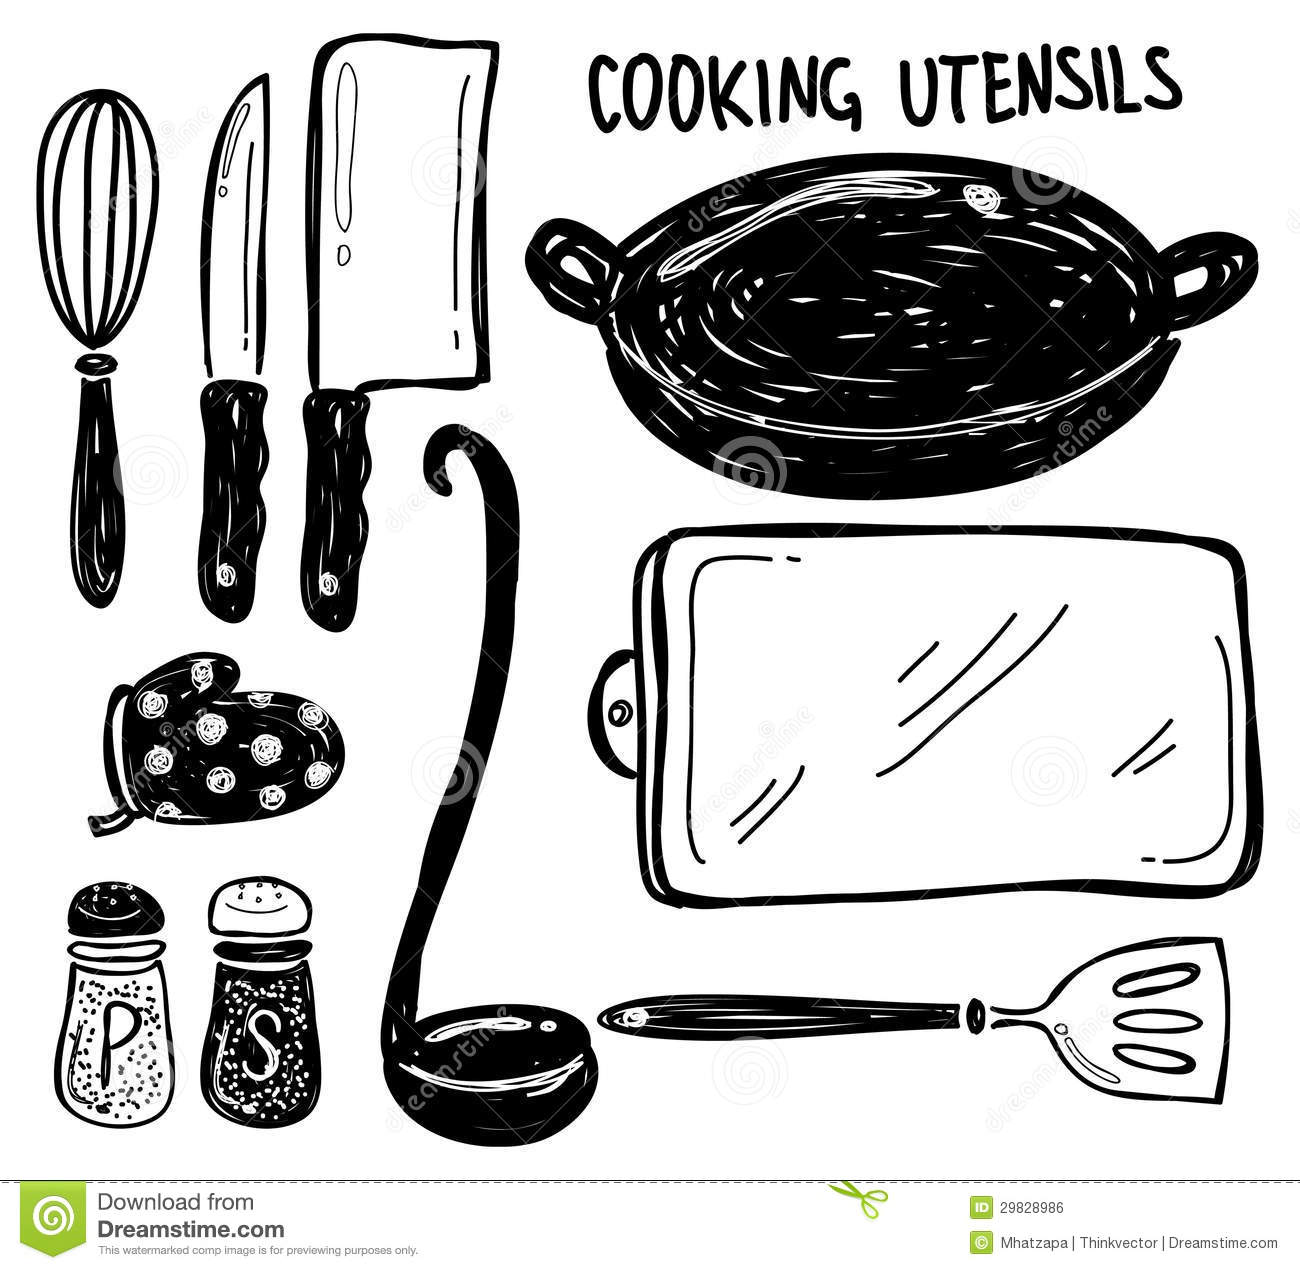 Kitchen Tools Drawings Cooking Utensil Doodle Royalty Free Stock Image  Image 29828986